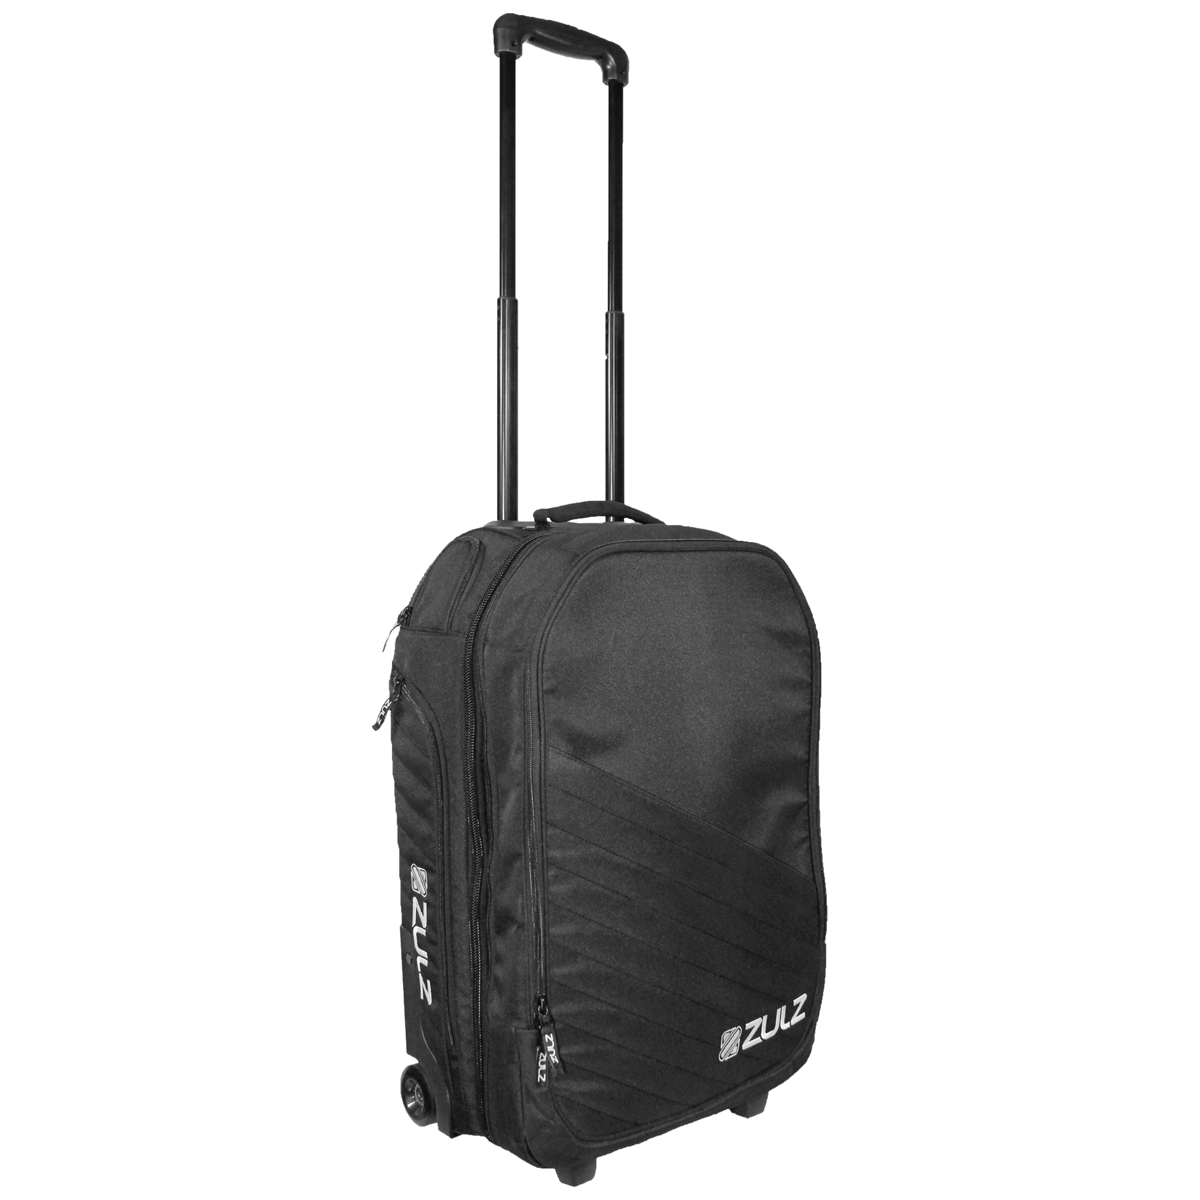 Zulz Primetime Black/Black Travel Bag